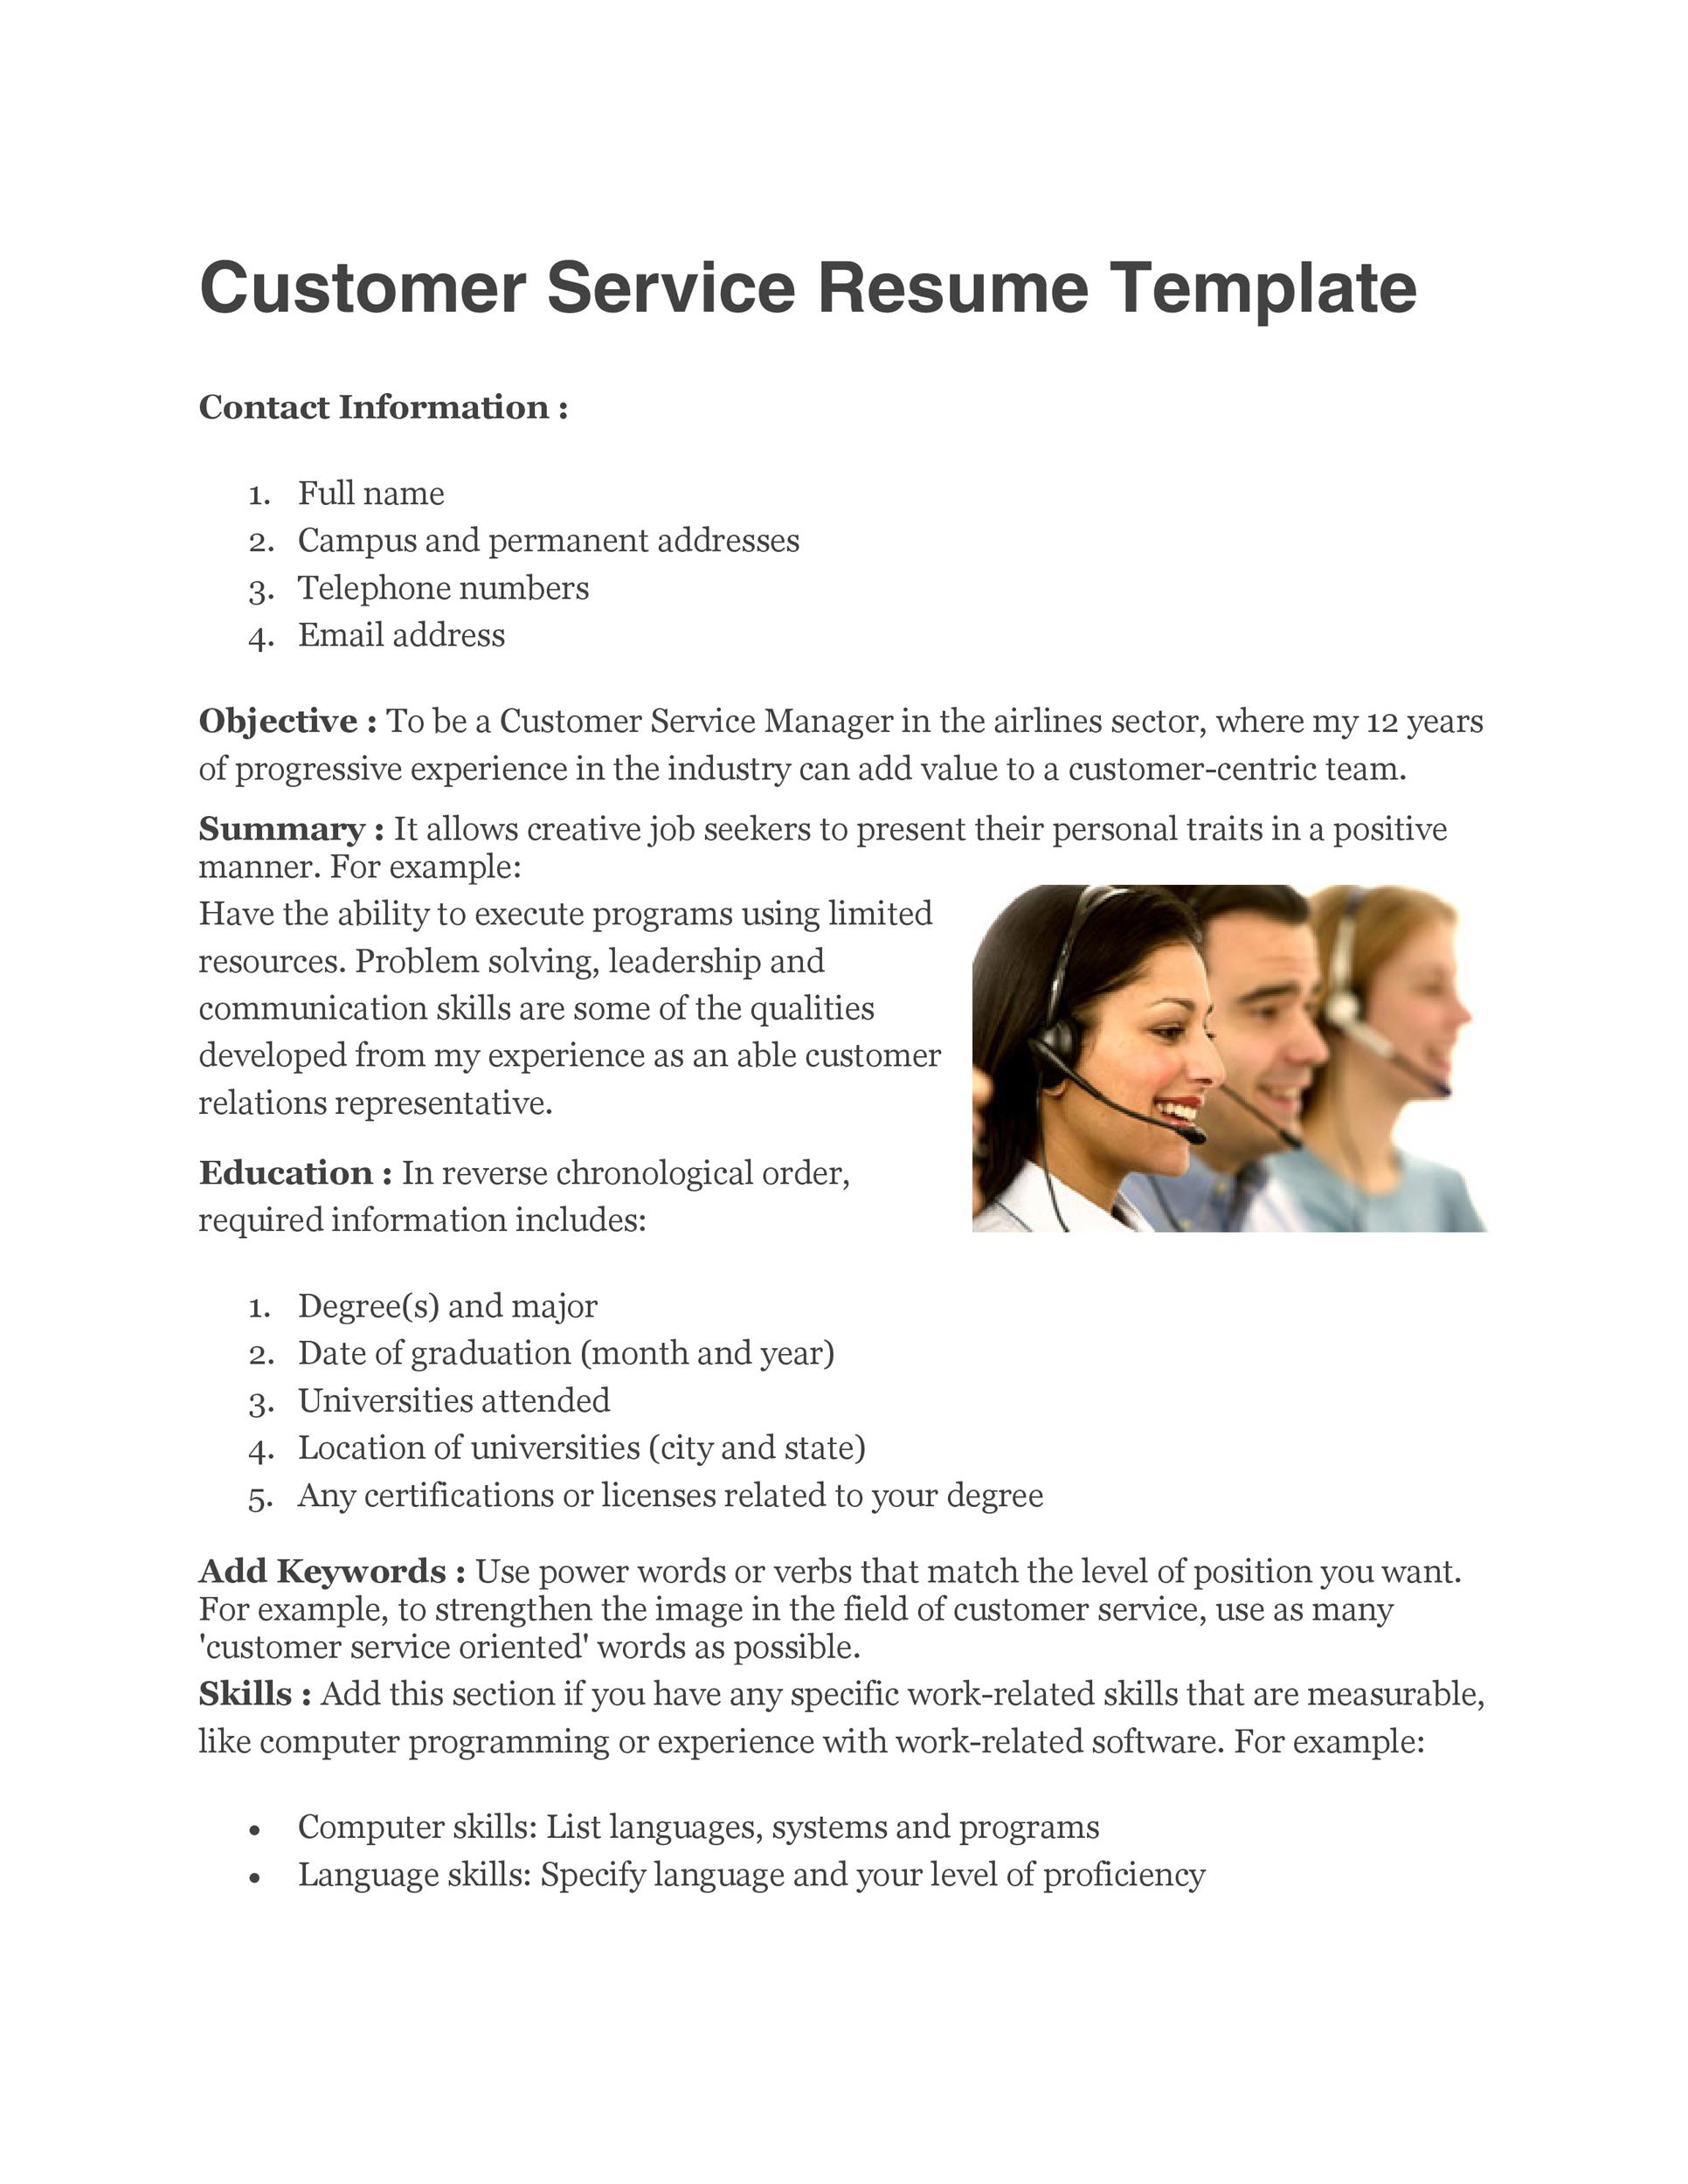 customer service resume template 13